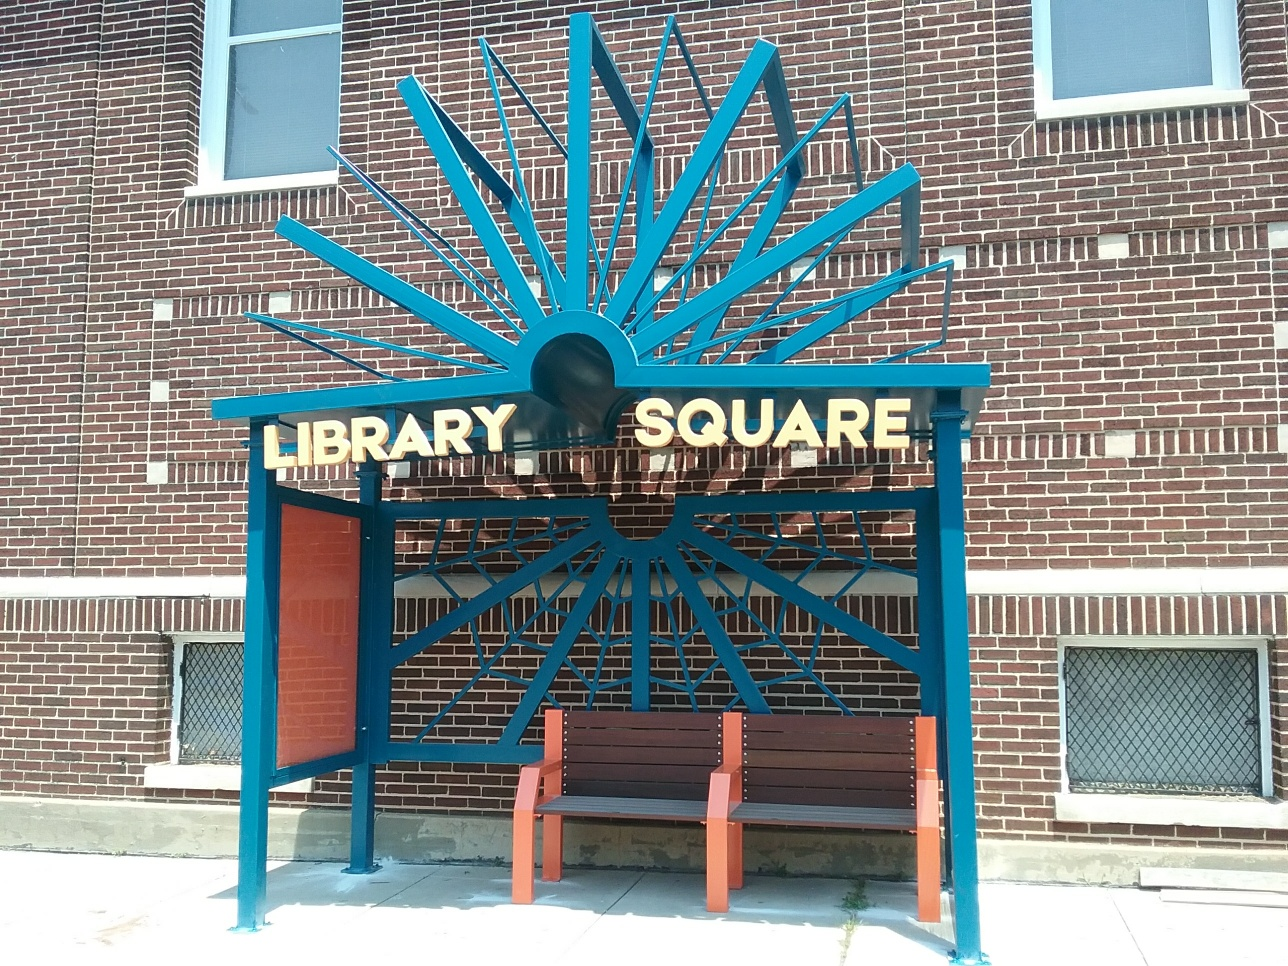 Scofield_4_Library_Square_Linwood